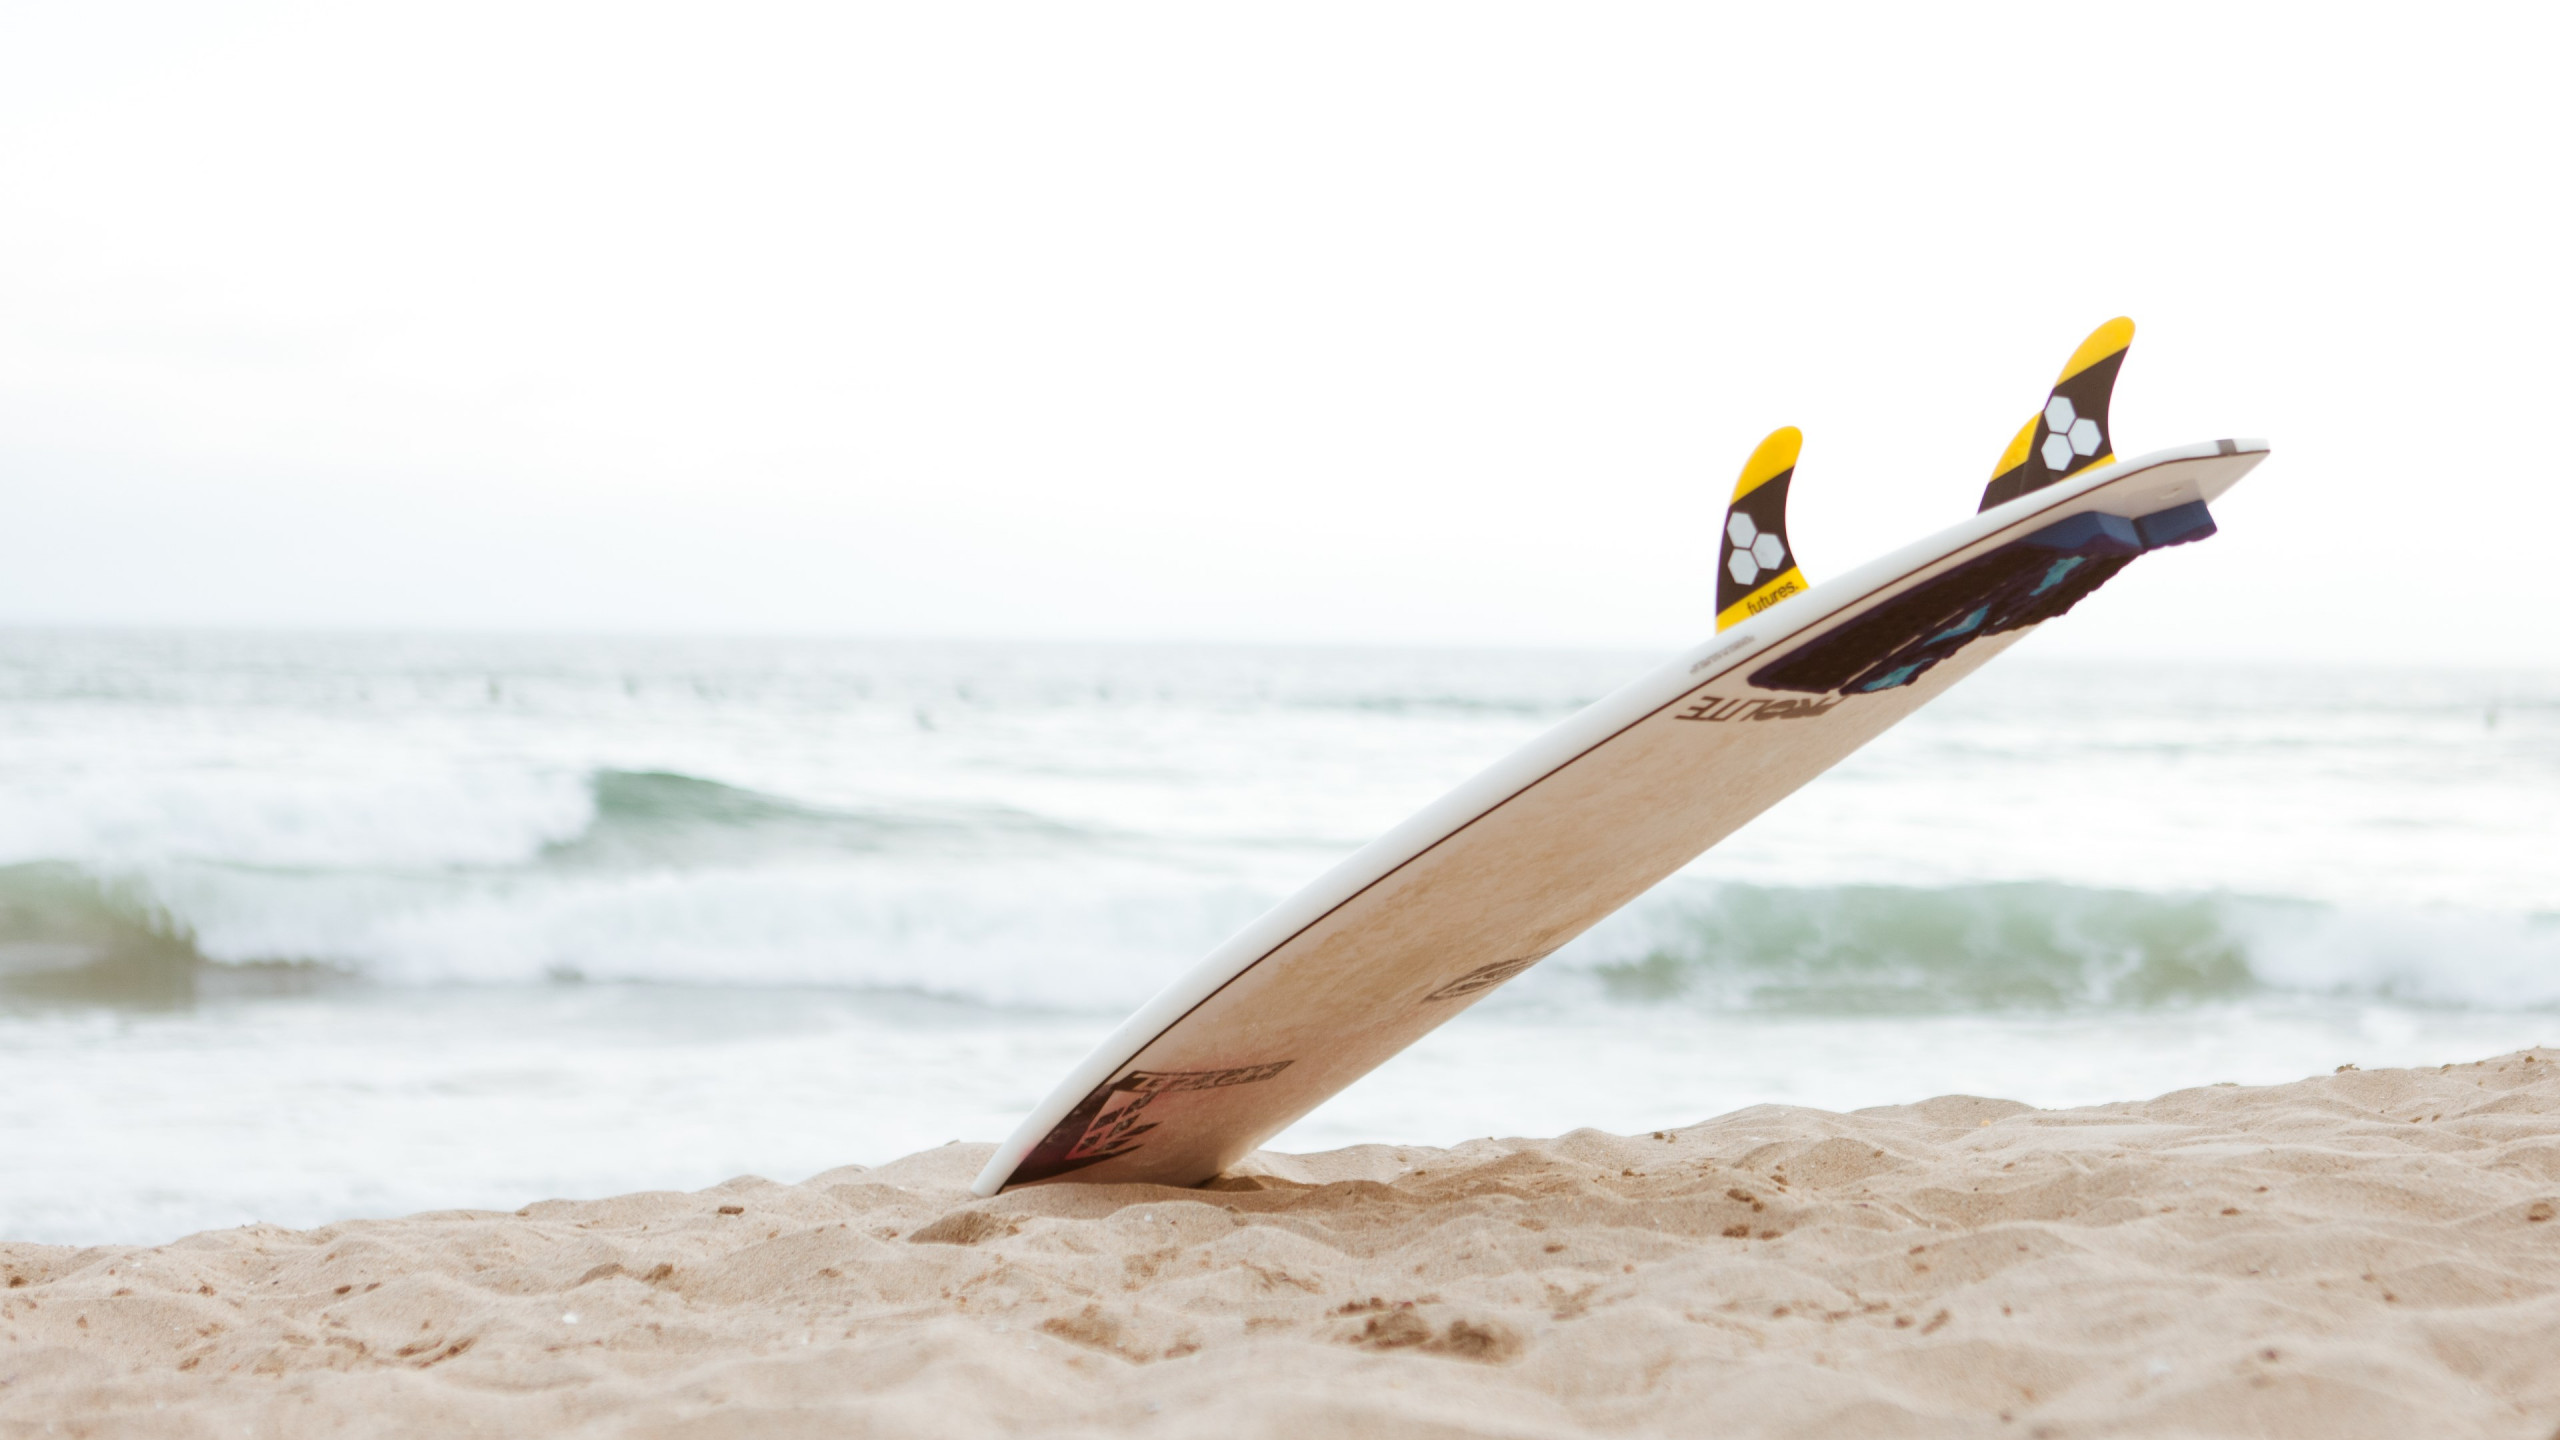 Surf board on the beach wallpaper 2560x1440